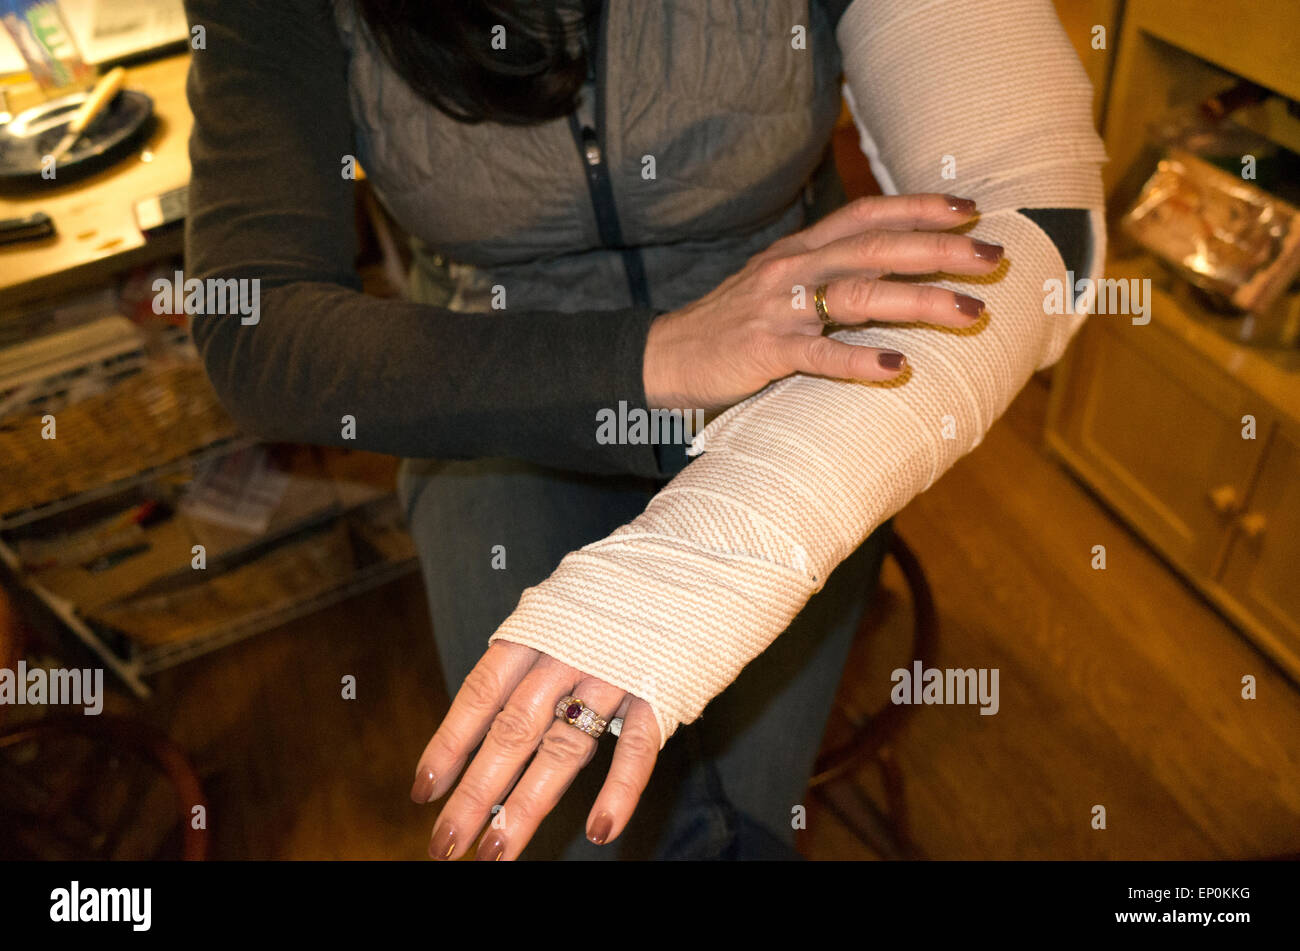 Woman holding wrapped arm treating a broken elbow after having slipped on ice. St Paul Minnesota MN USA - Stock Image